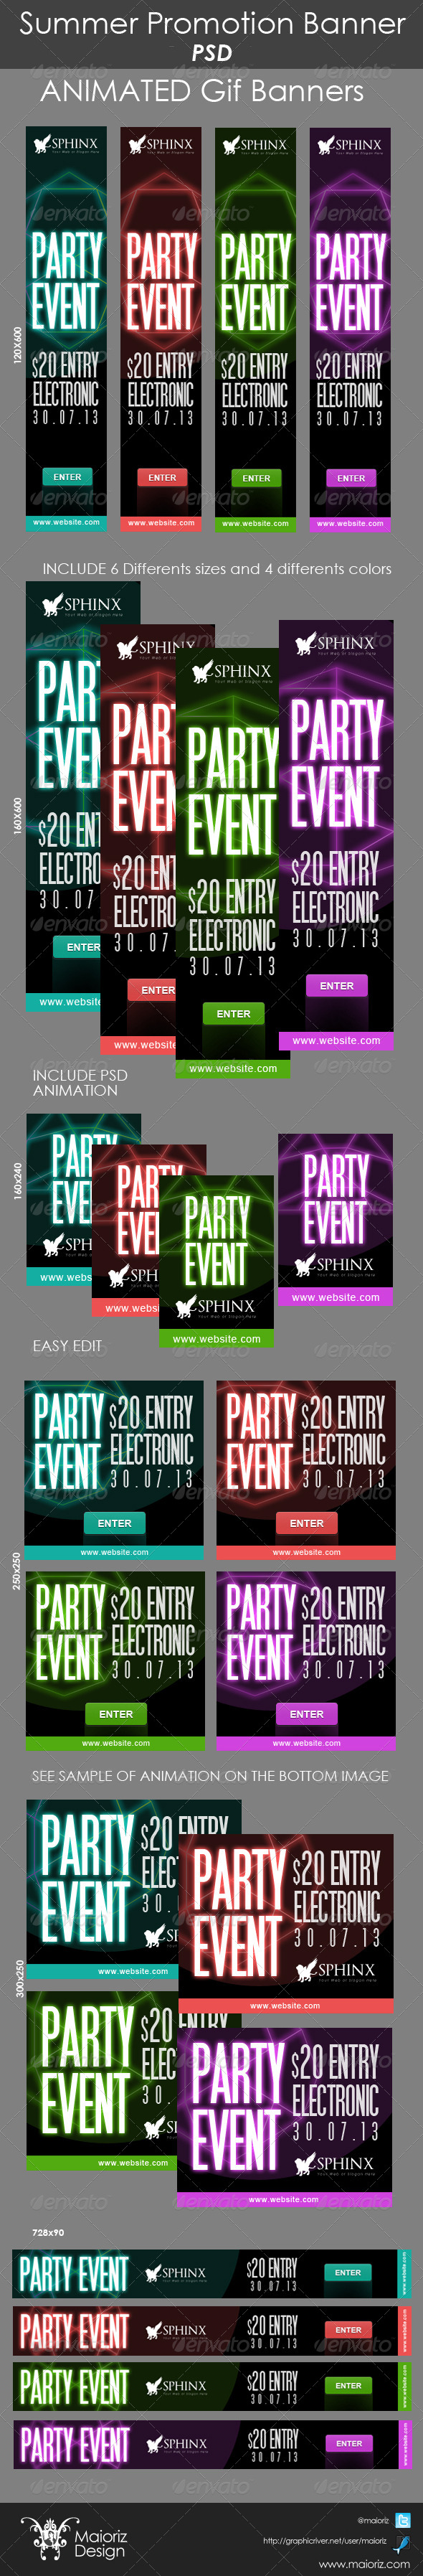 Party Promotion Banners - Banners & Ads Web Elements